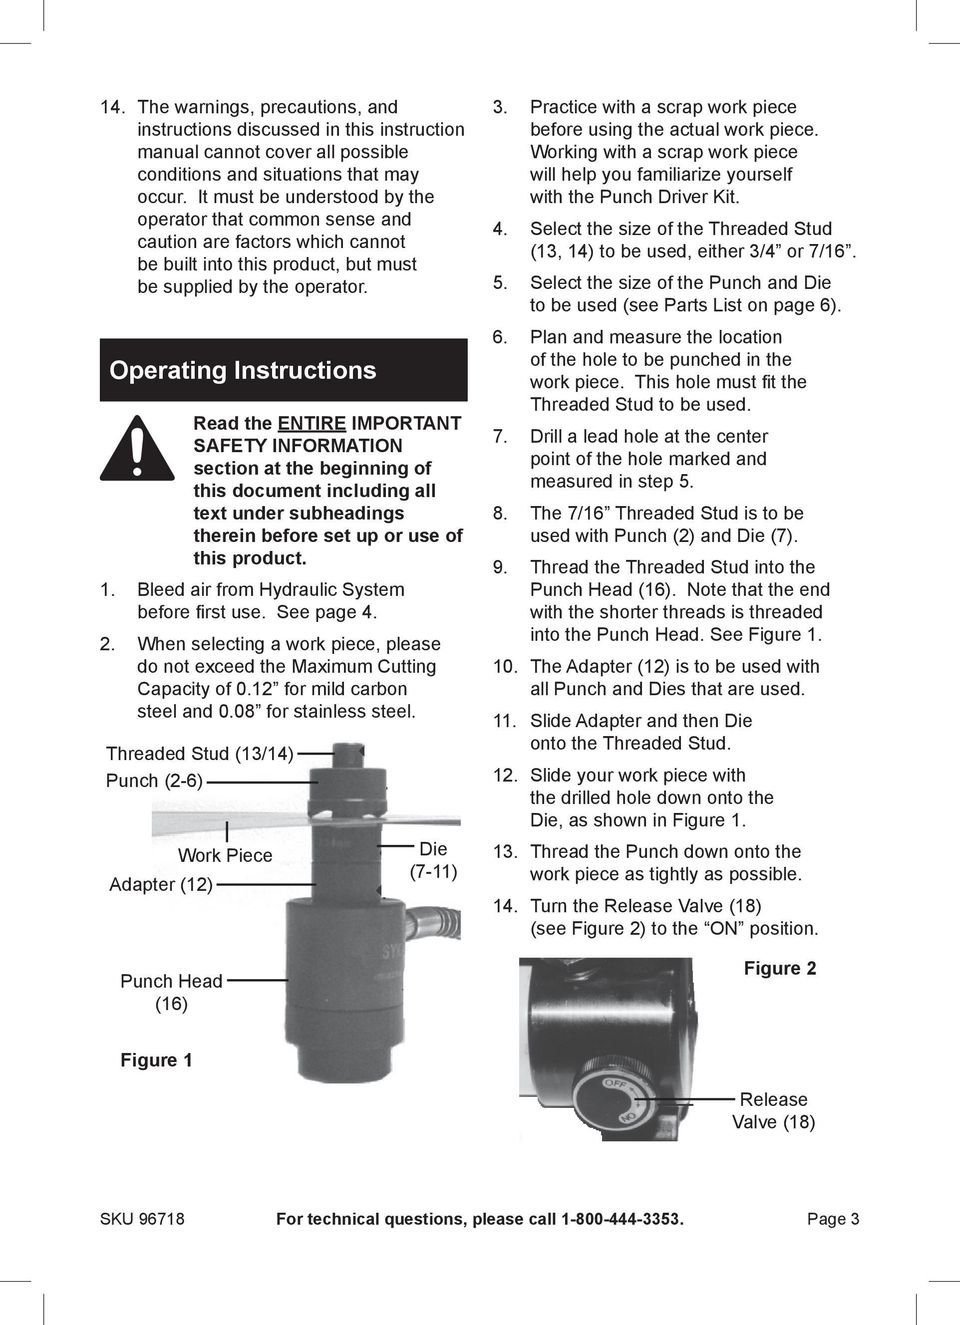 Operating Instructions Read the entire Important Safety Information section at the beginning of this document including all text under subheadings therein before set up or use of this product. 1.